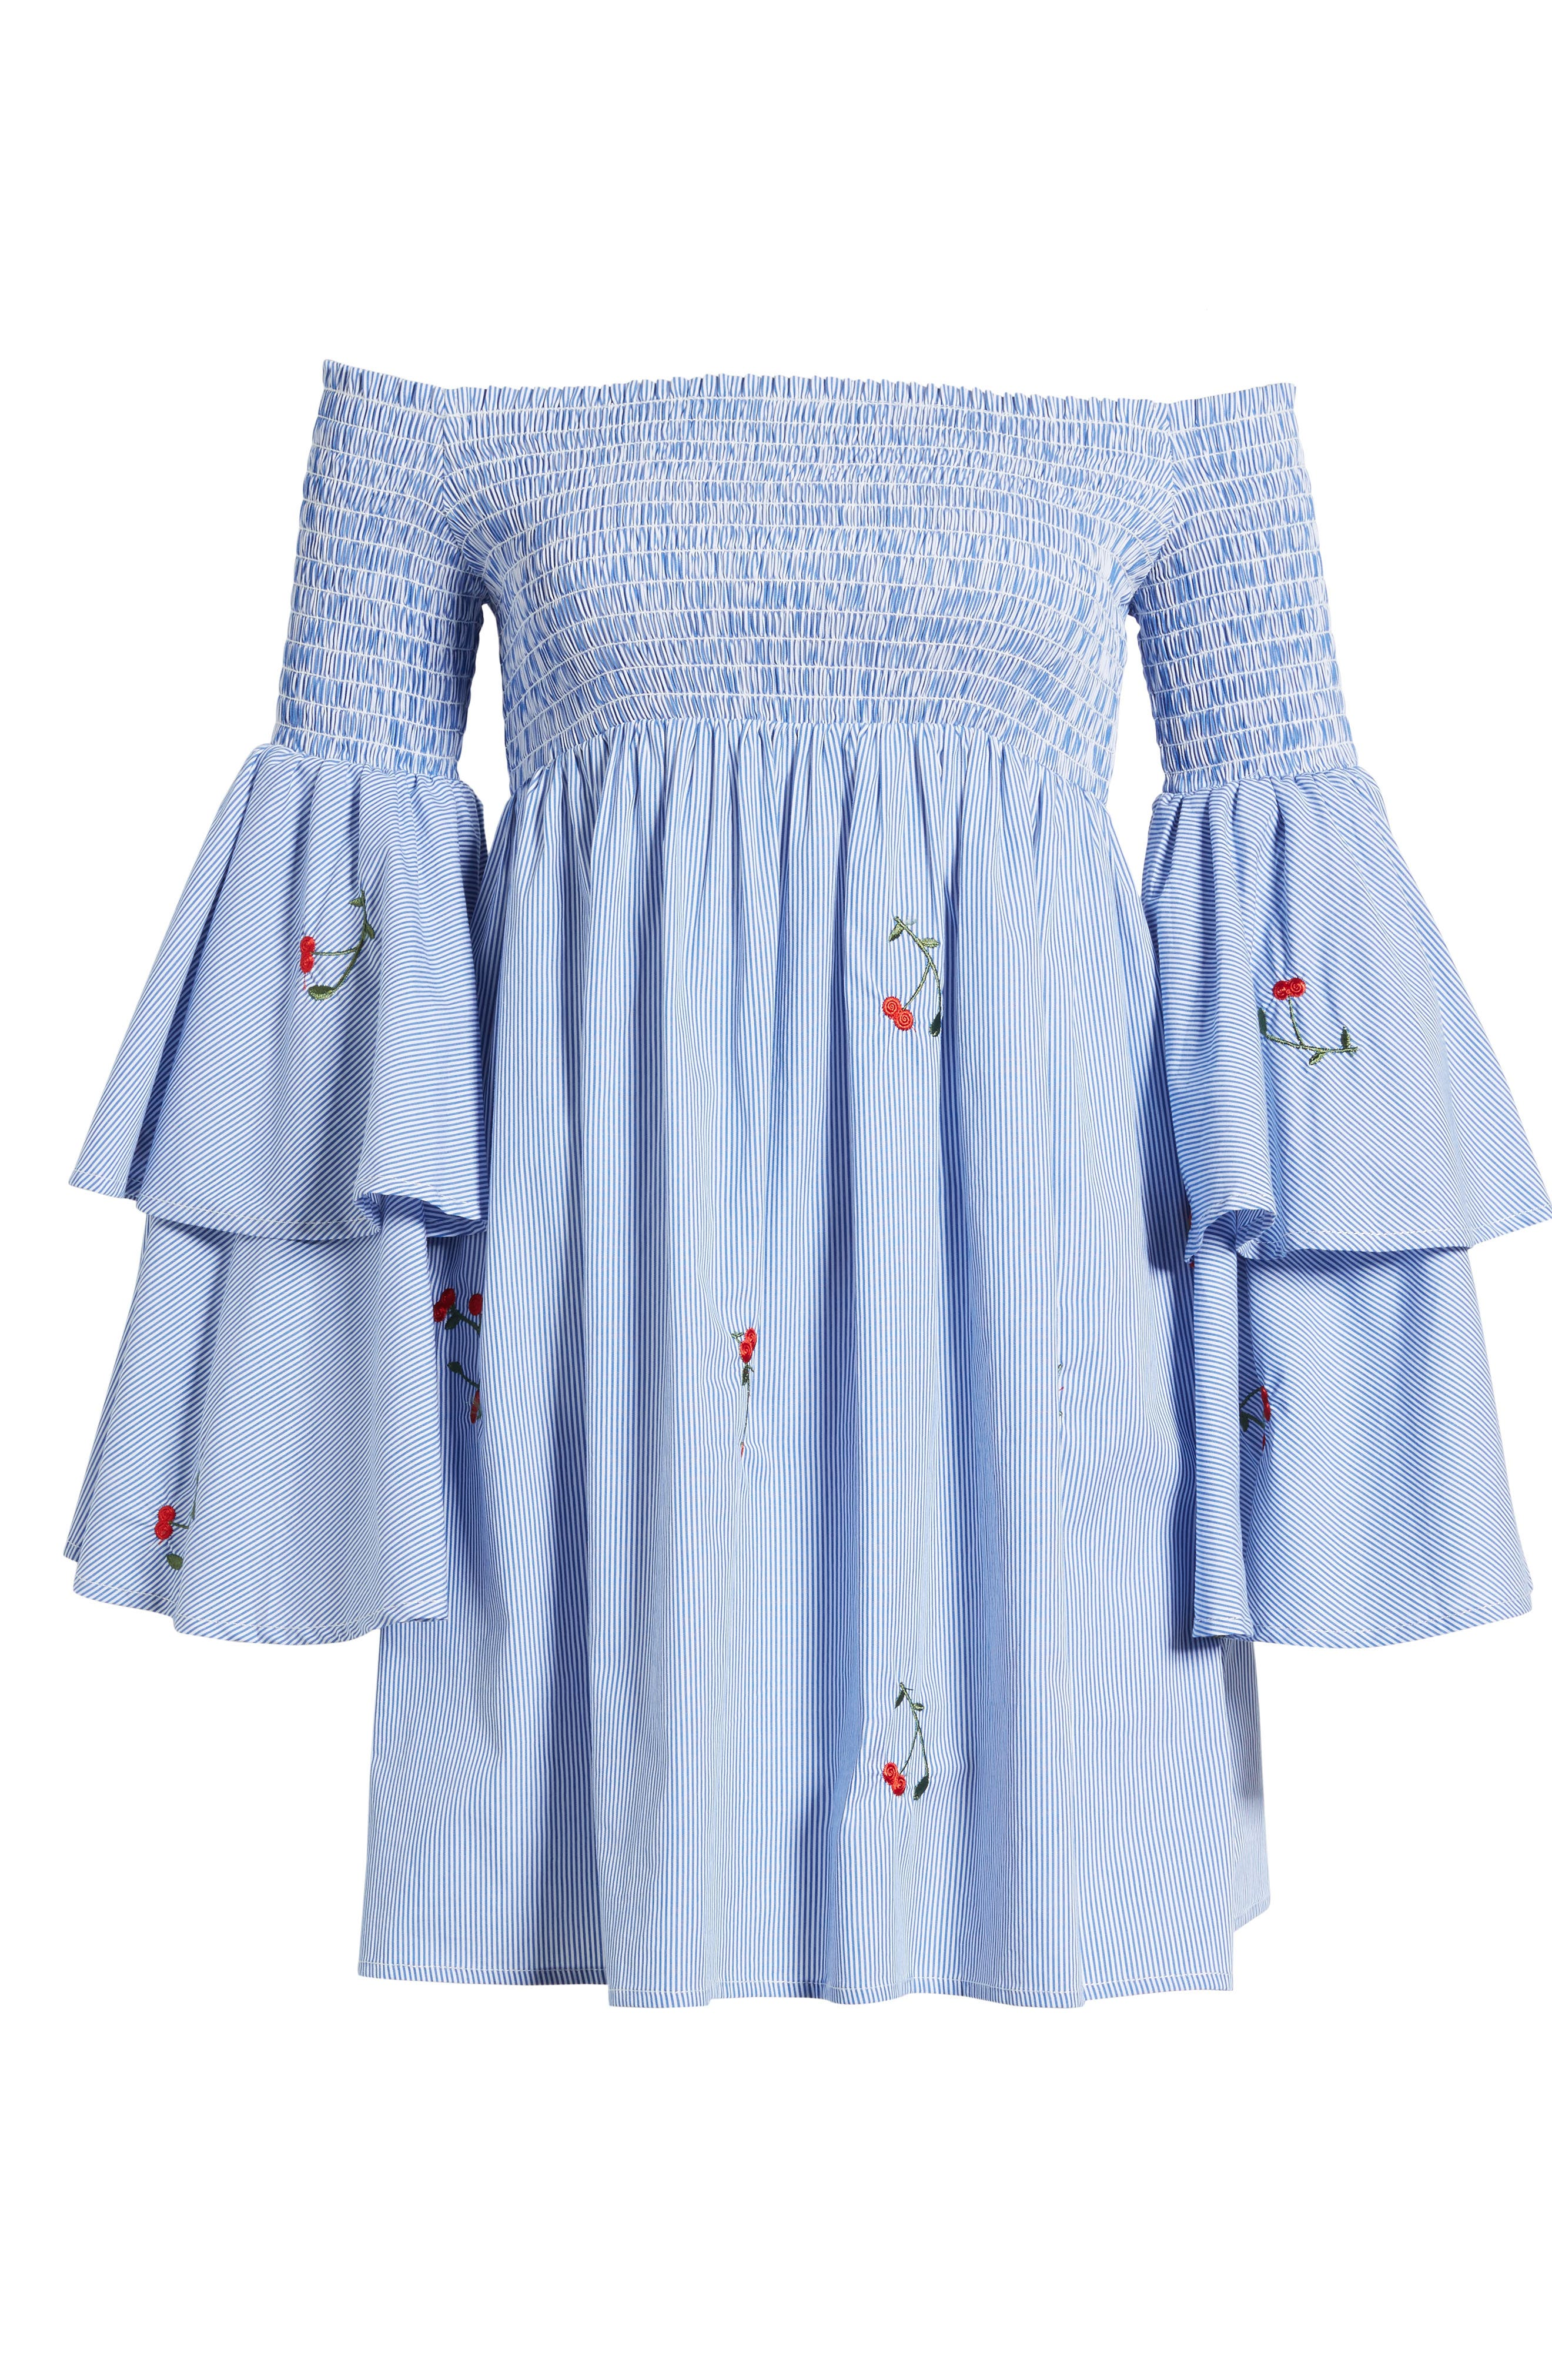 Smocked Off the Shoulder Bell Sleeve Dress,                             Alternate thumbnail 6, color,                             402